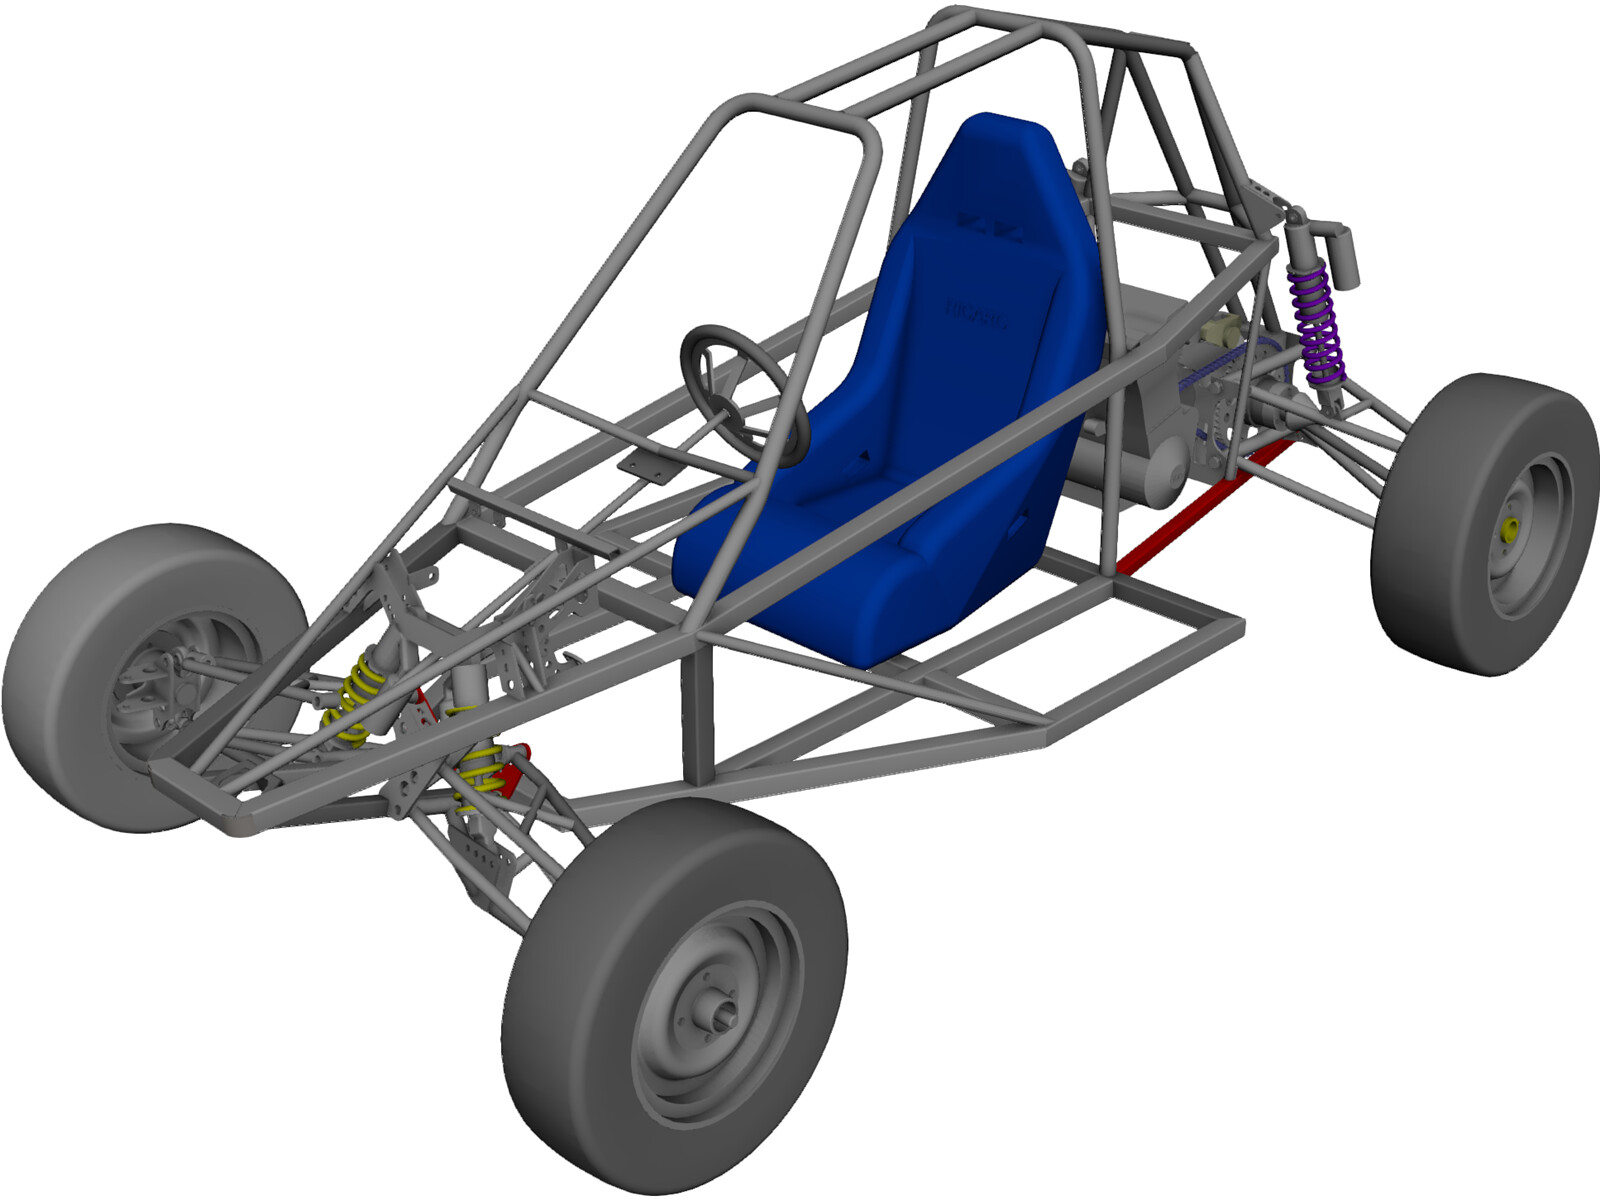 Buggy Off-road 3D Model - 3D CAD Browser